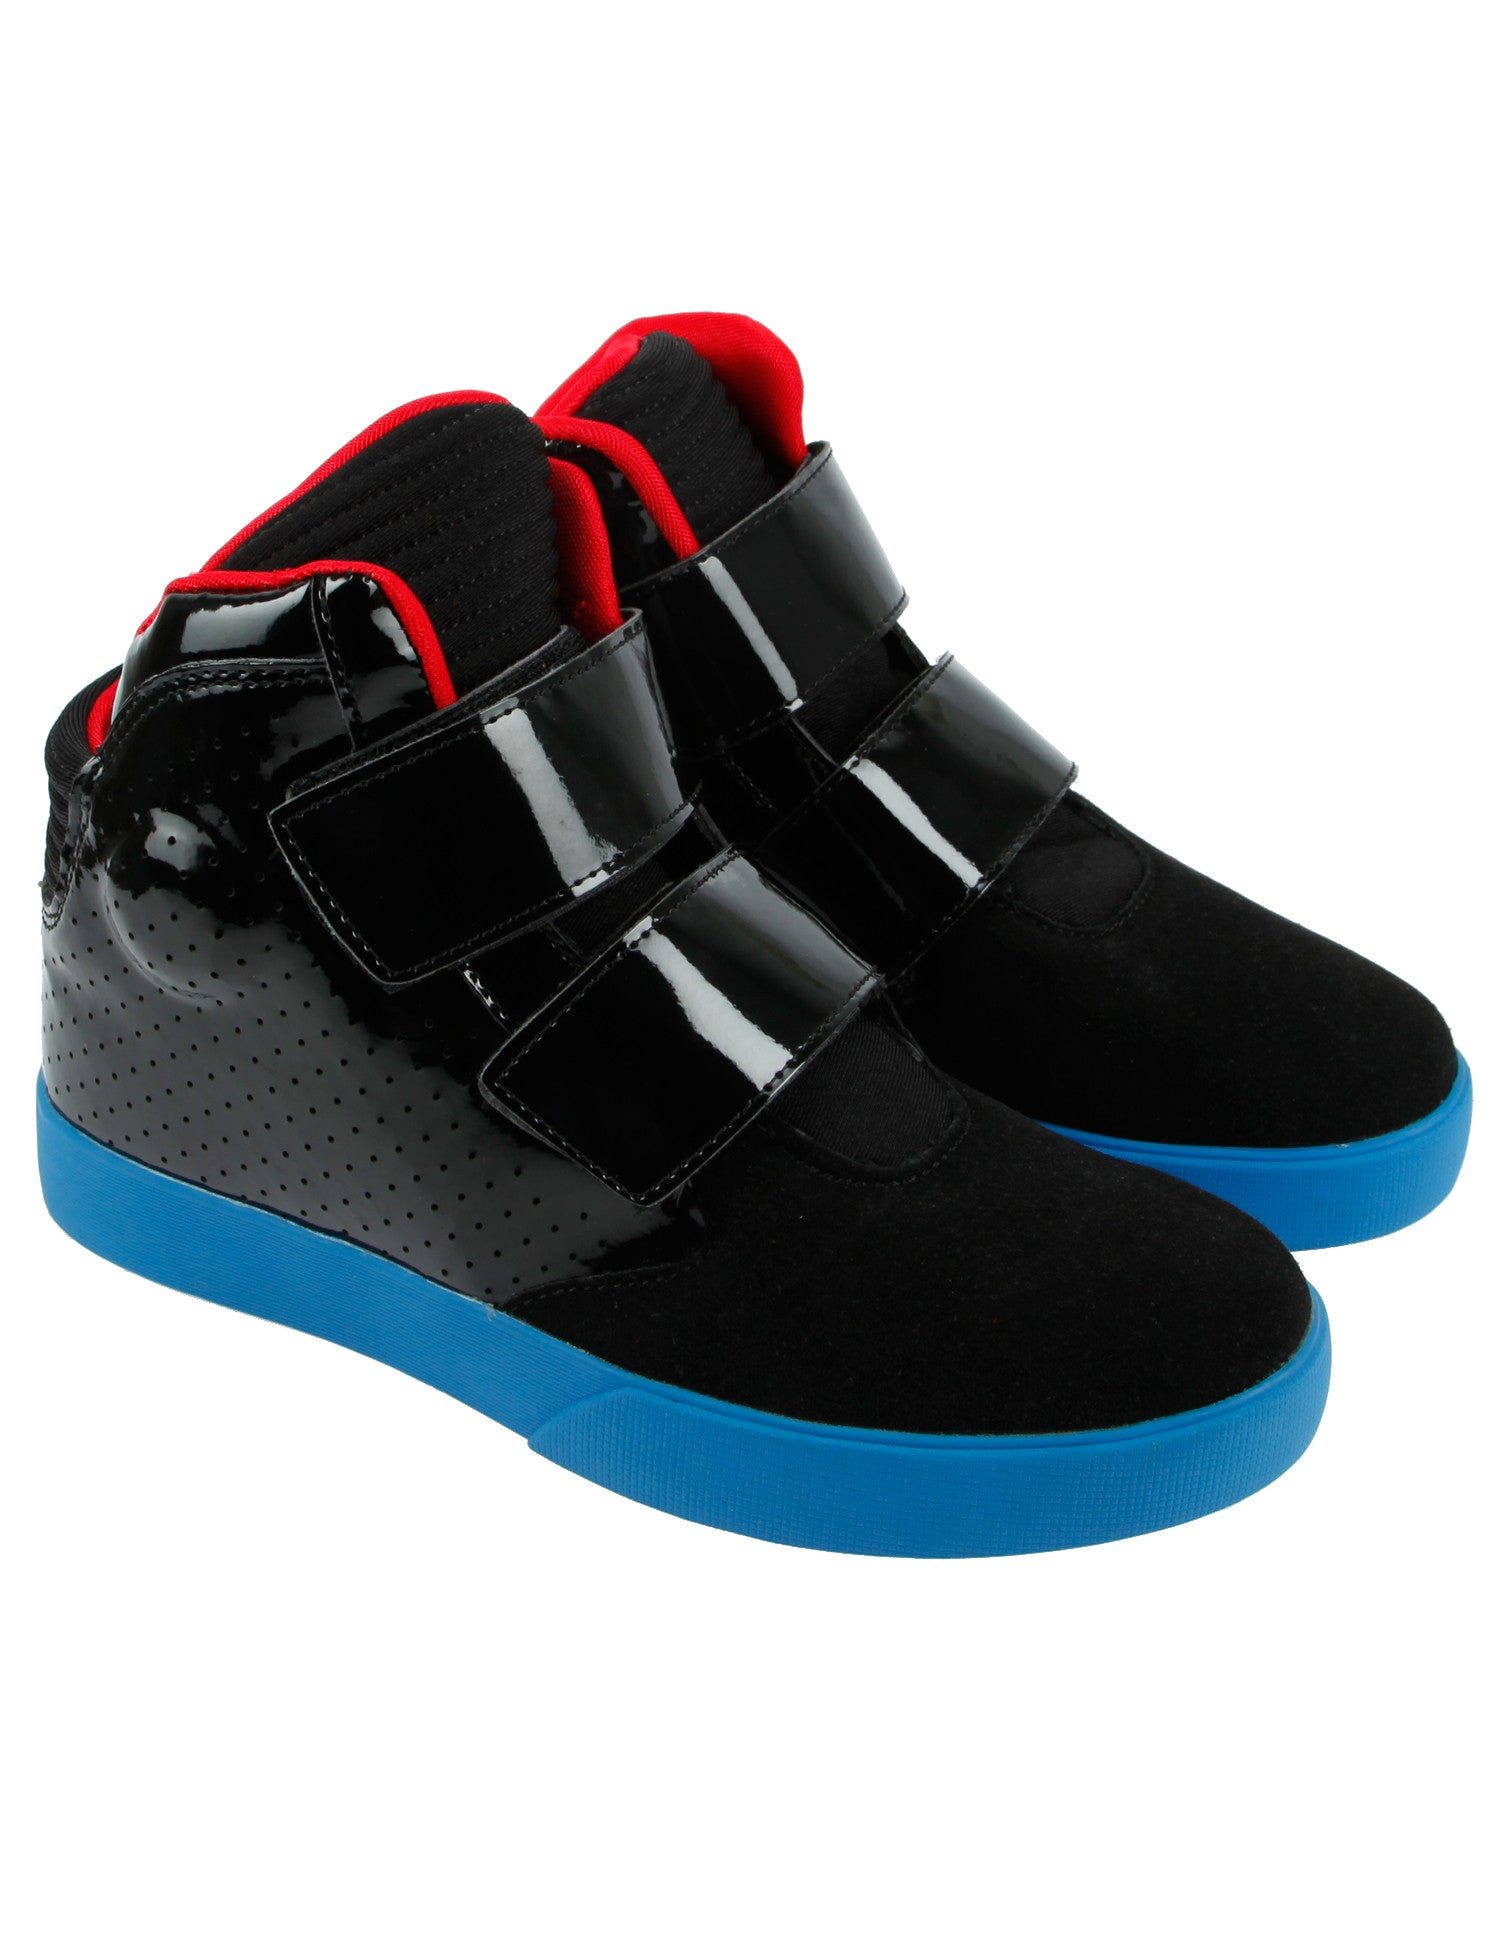 Cultz 150821 Shoes Black Red